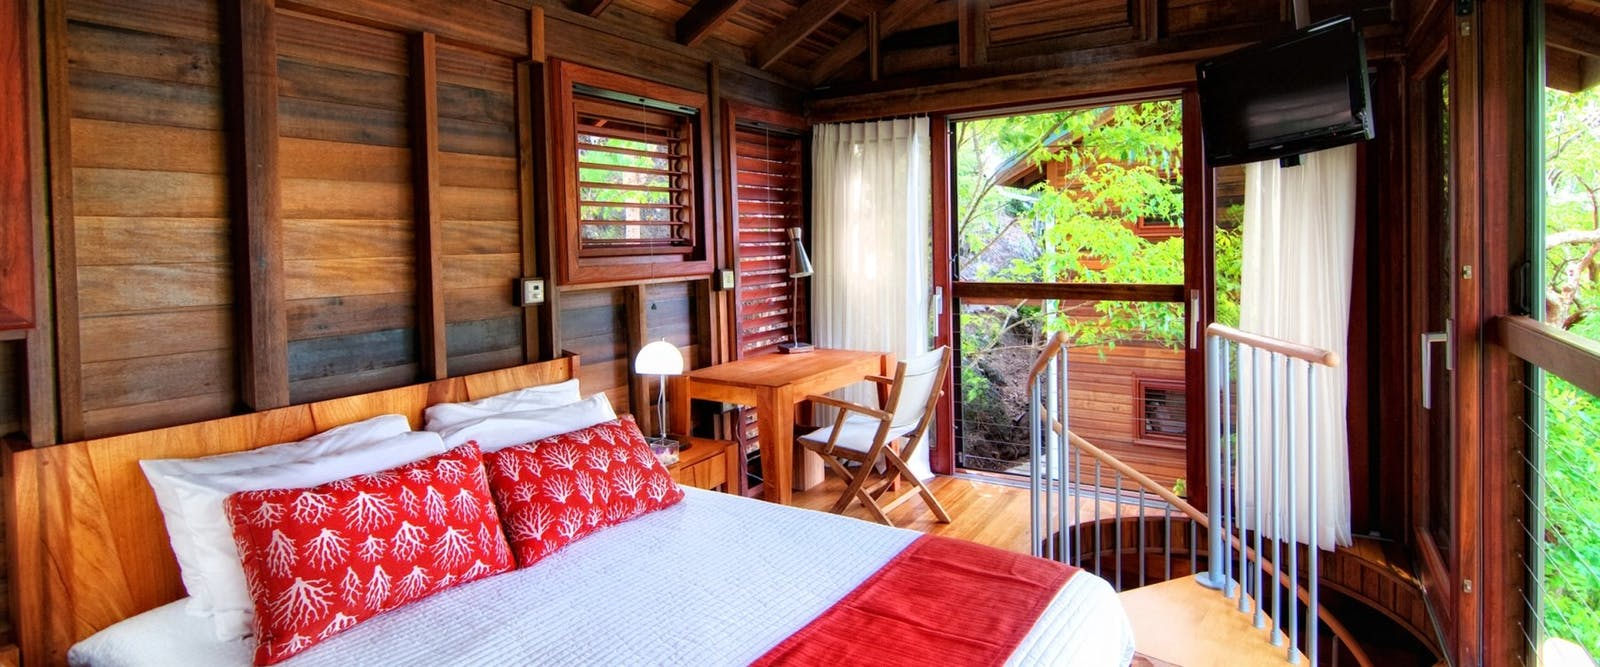 Bungalow Bedroom at Secret Bay, Dominica